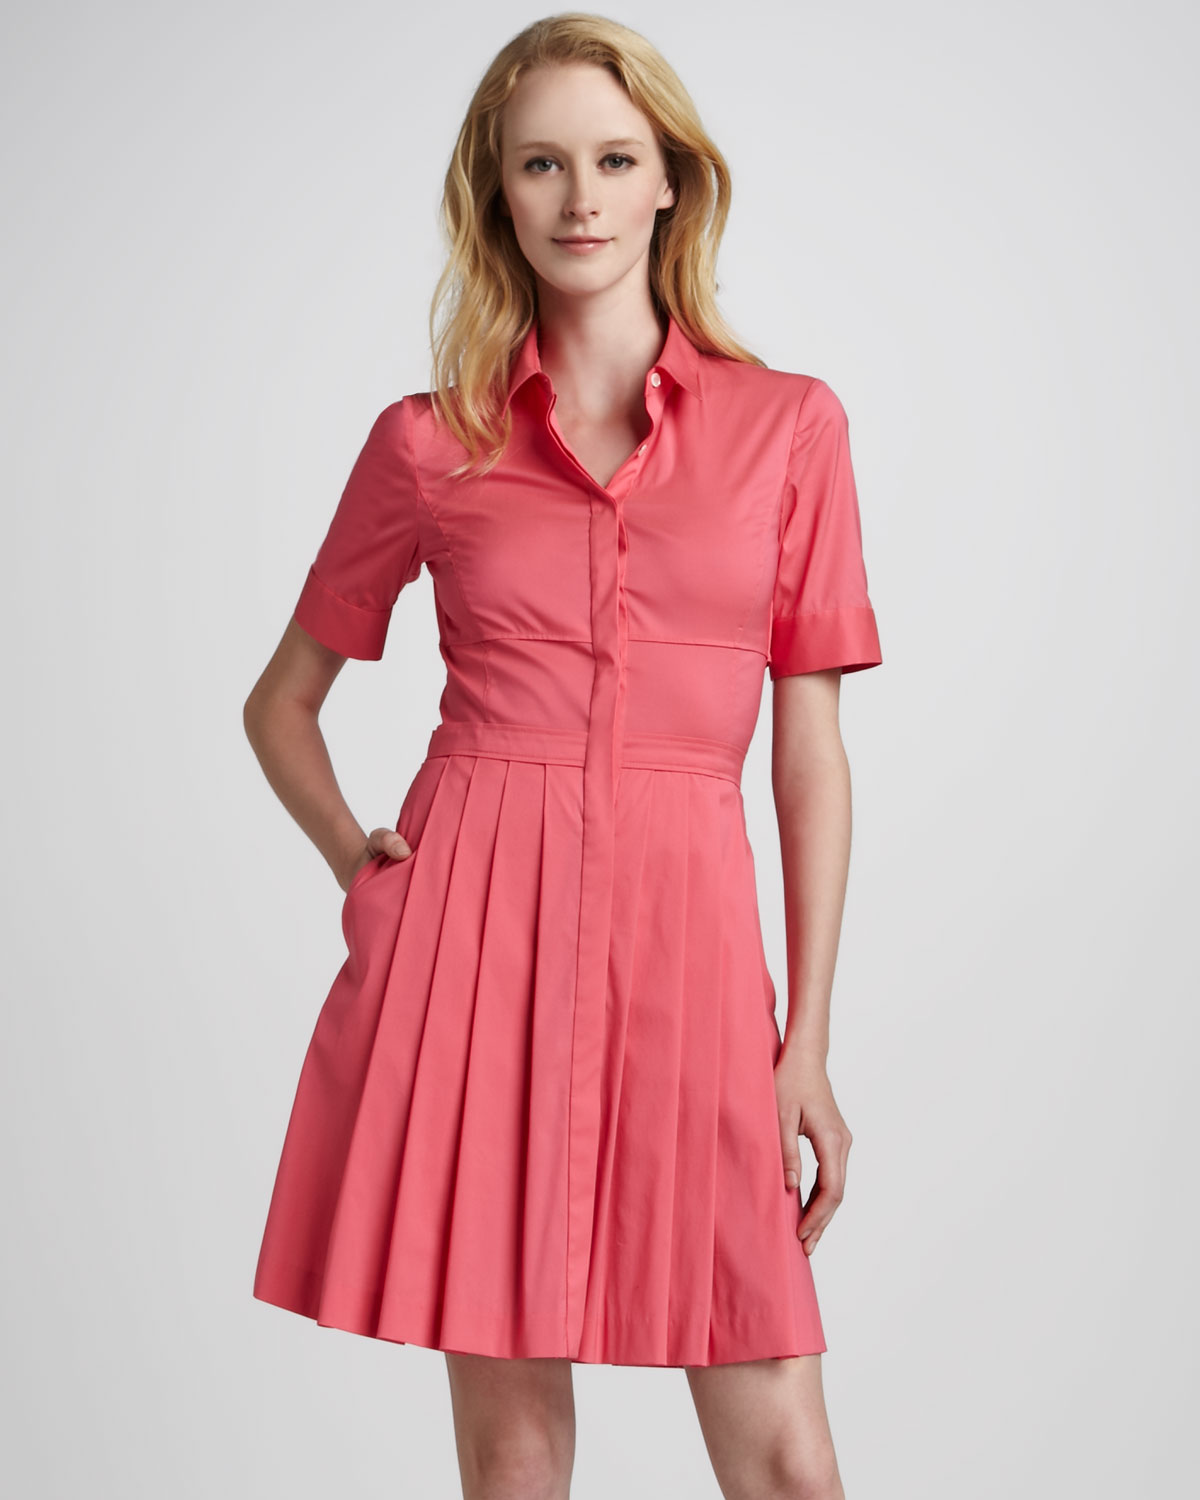 090dd22b3d6 Theory Sensa Pleat Skirt Shirt Dress in Pink - Lyst